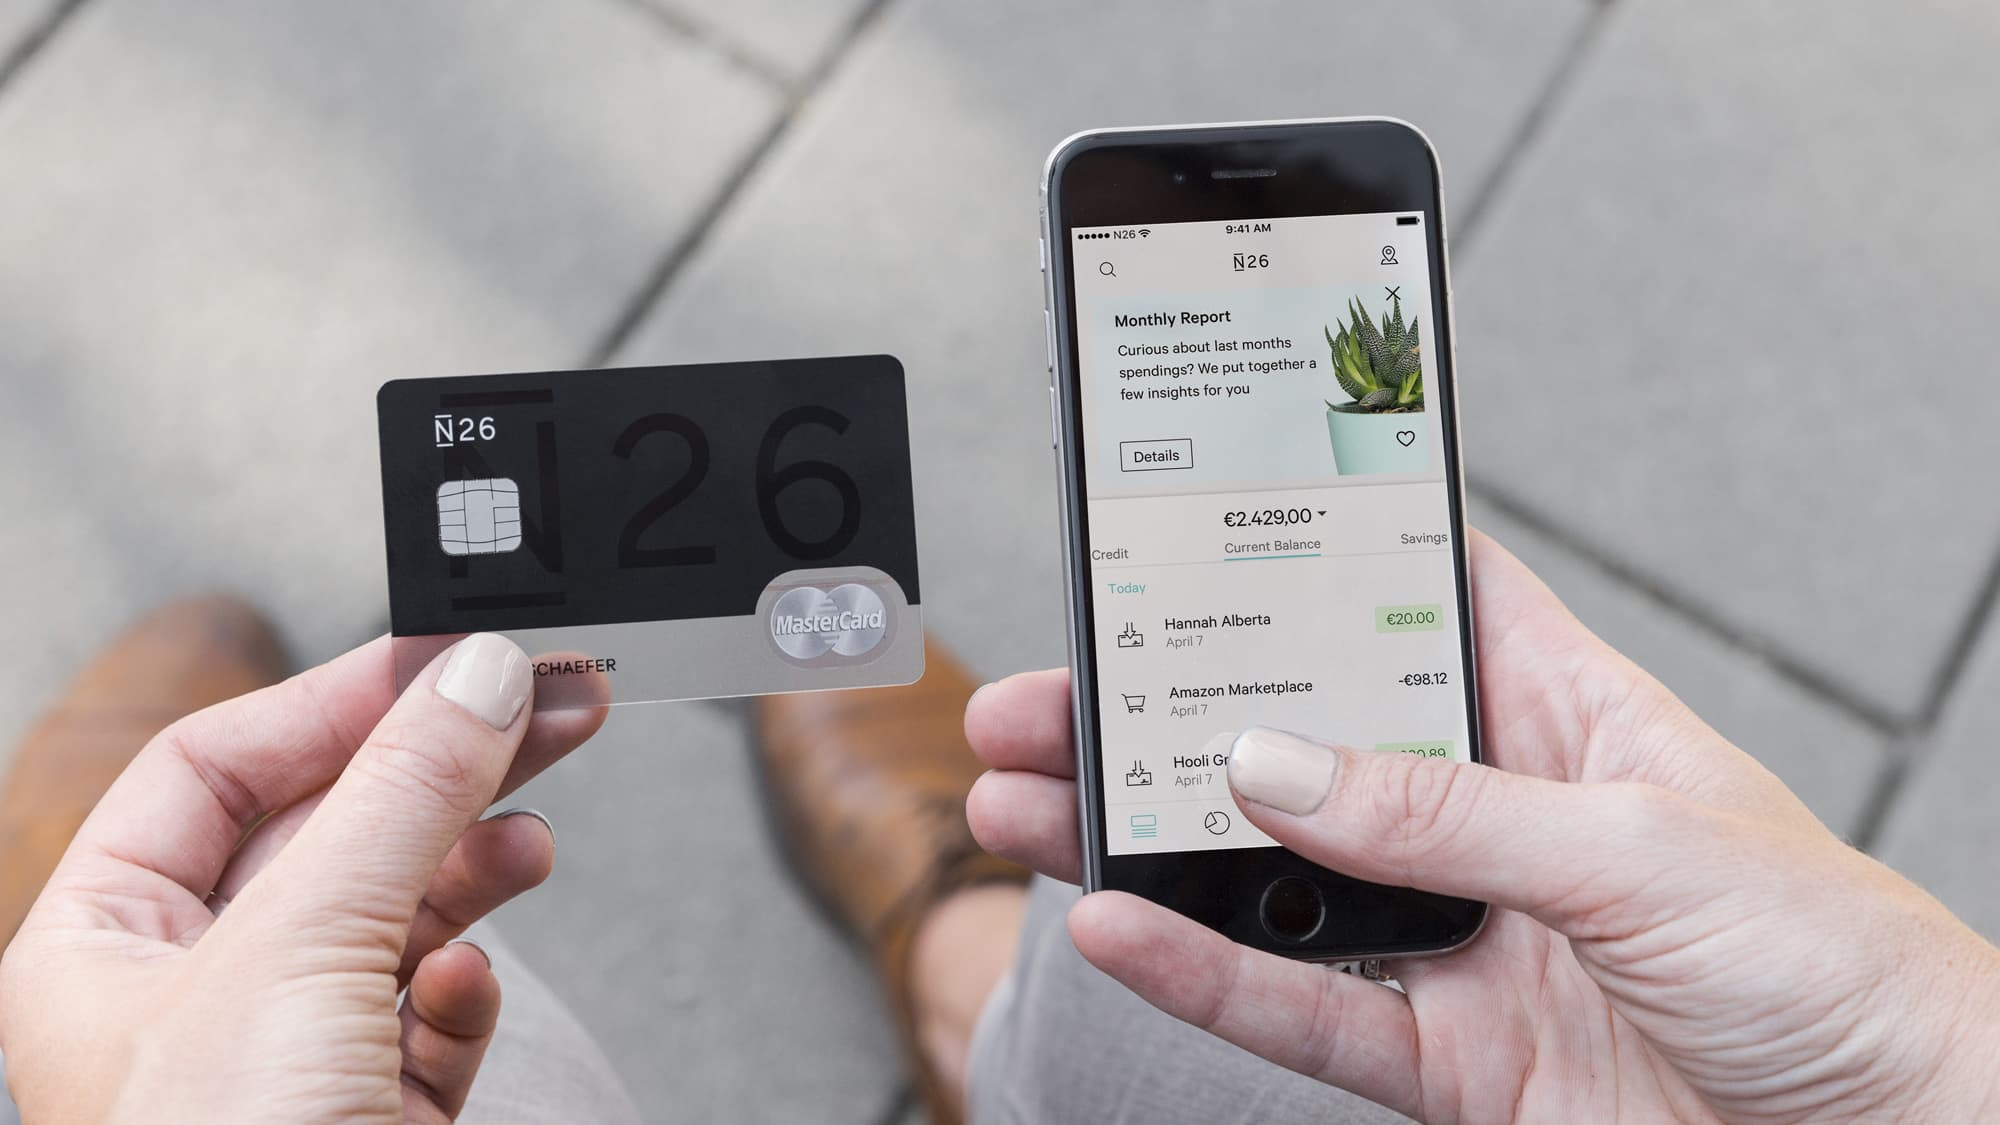 N26 is one the world's best banks for nomads and travelers